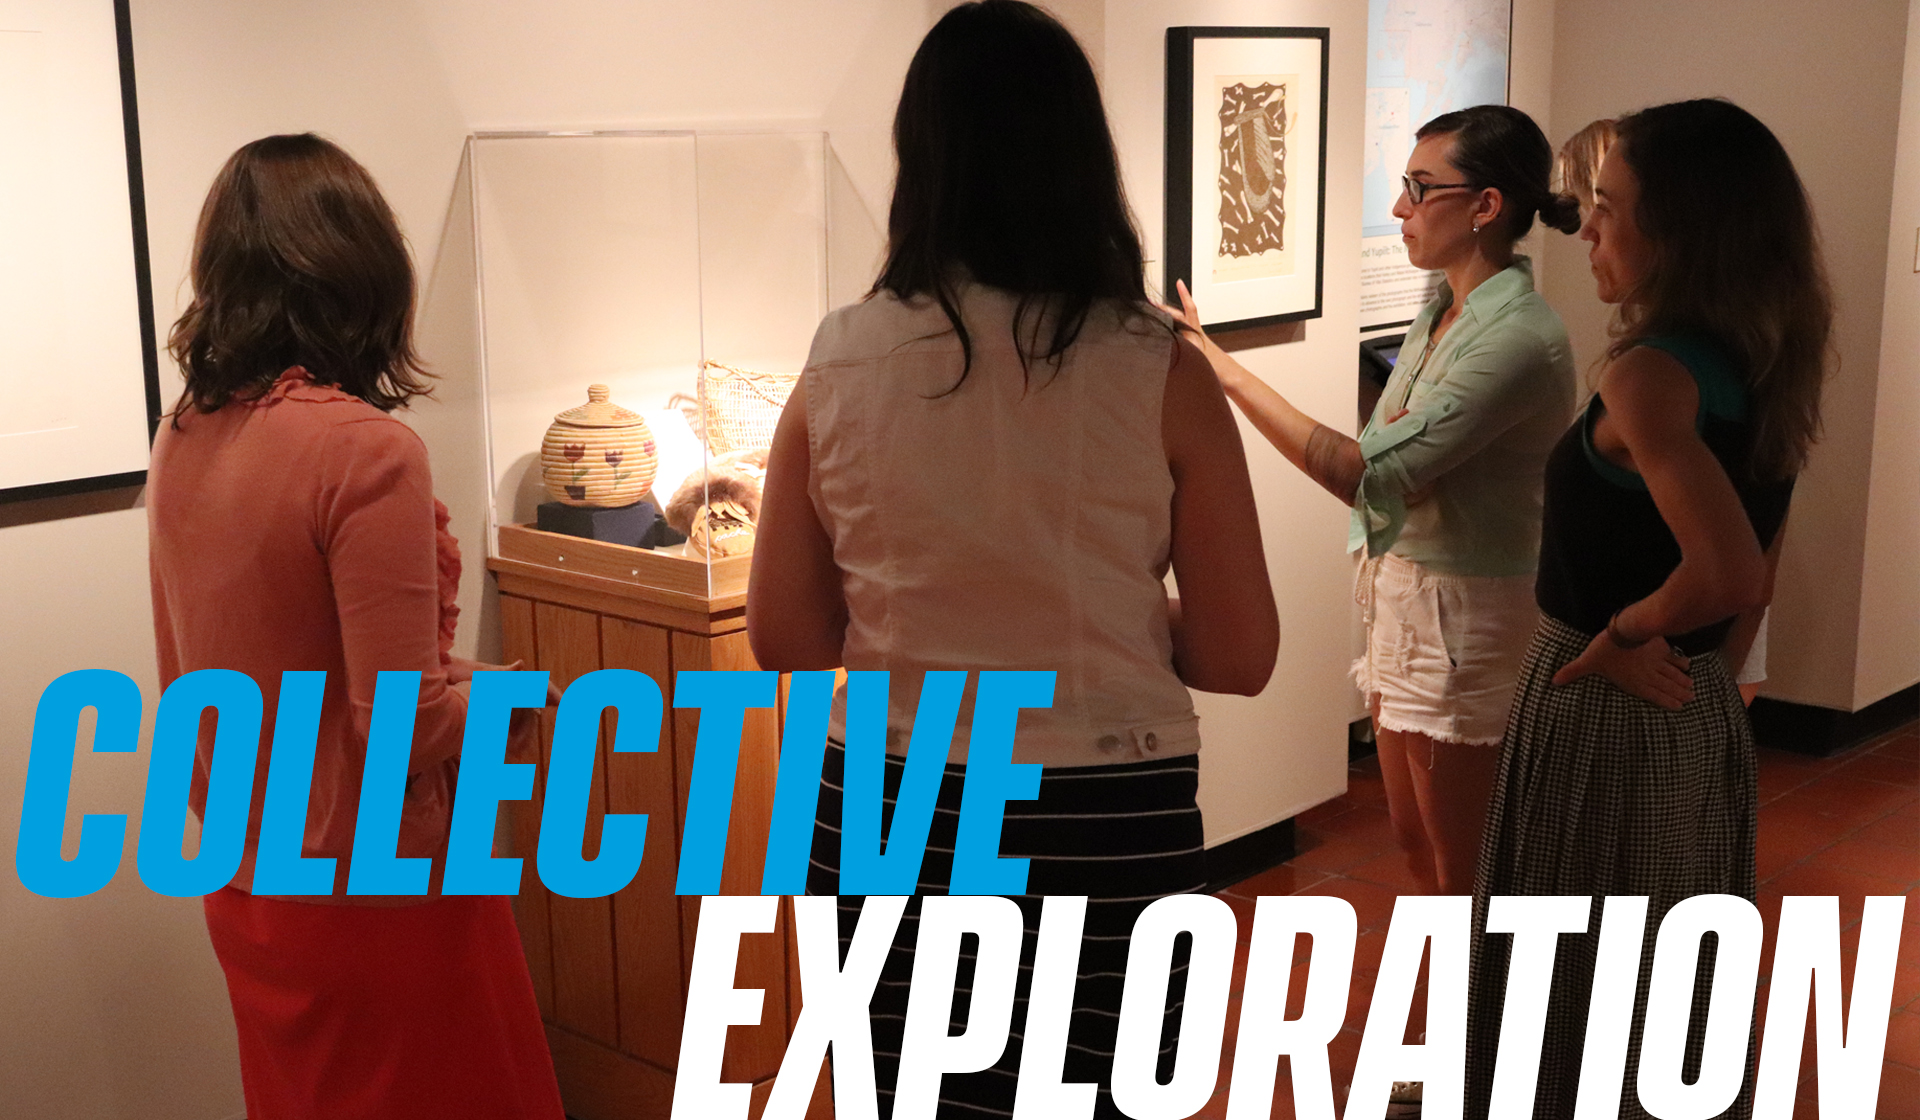 Collective Exploration